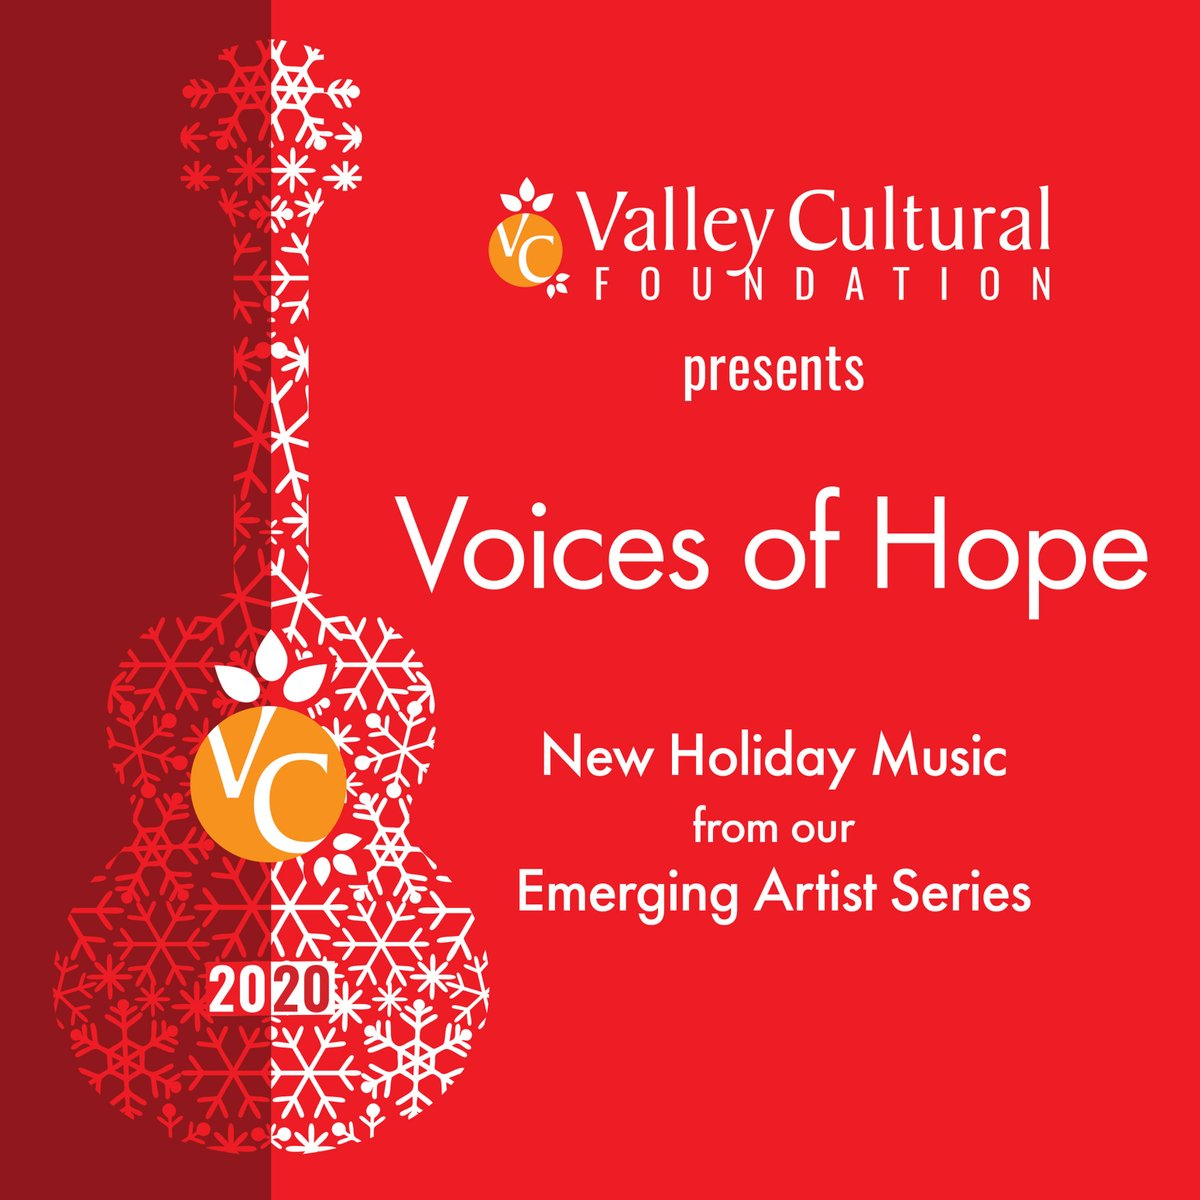 VCF is incredibly excited to announce its first ever Holiday Album - Voices Of Hope - featuring brand new songs from our #EmergingArtists! Go to !❄️🎁  #HolidaySong #HolidayAlbum #Holiday #HolidayMusic #NewMusic #ChristmasMusic #Christmas #Hanukkah